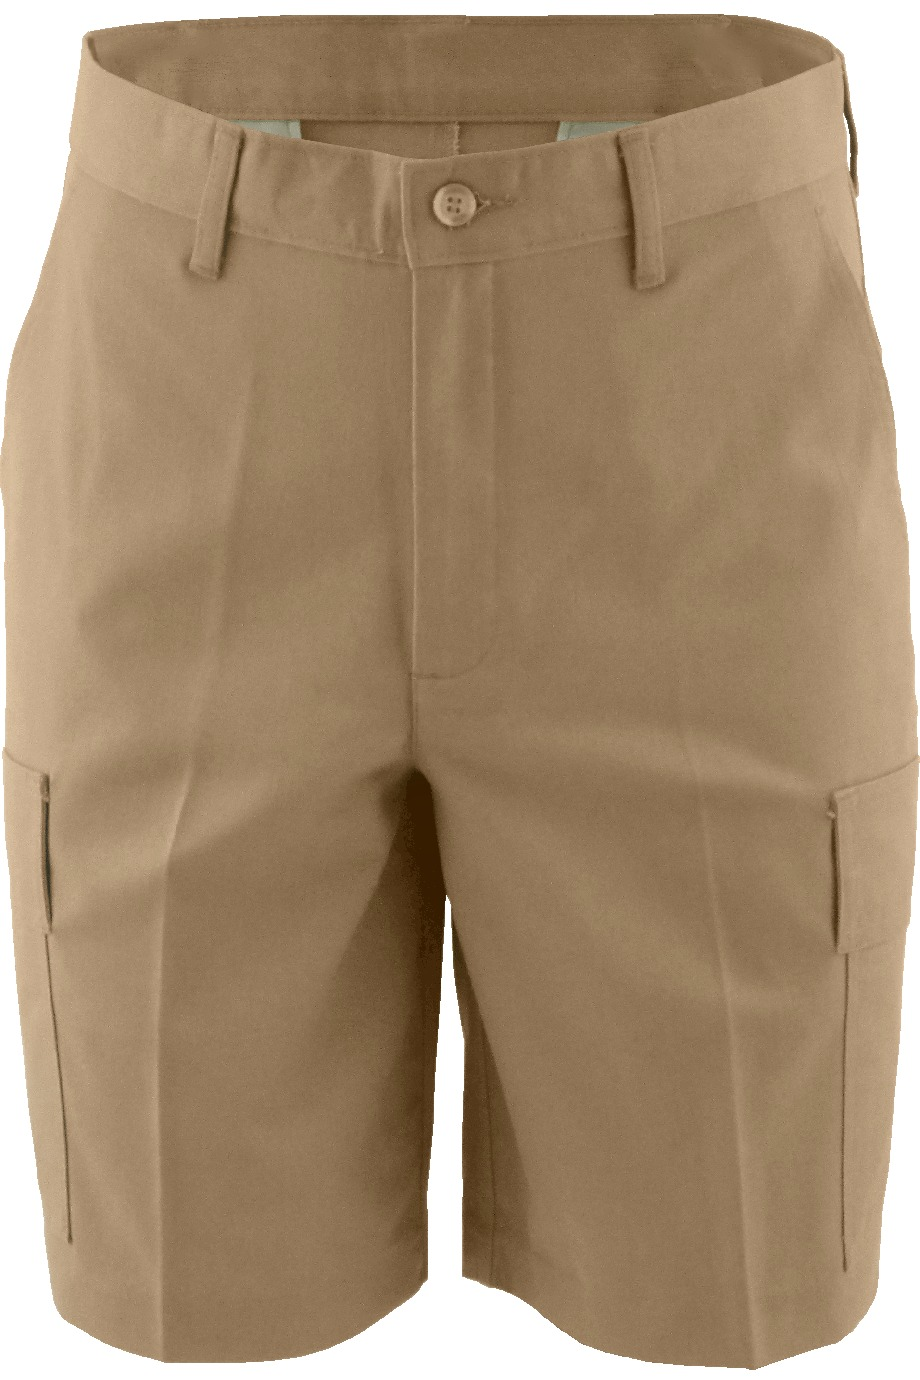 Edwards Garment 2475 - Men's Cargo Short